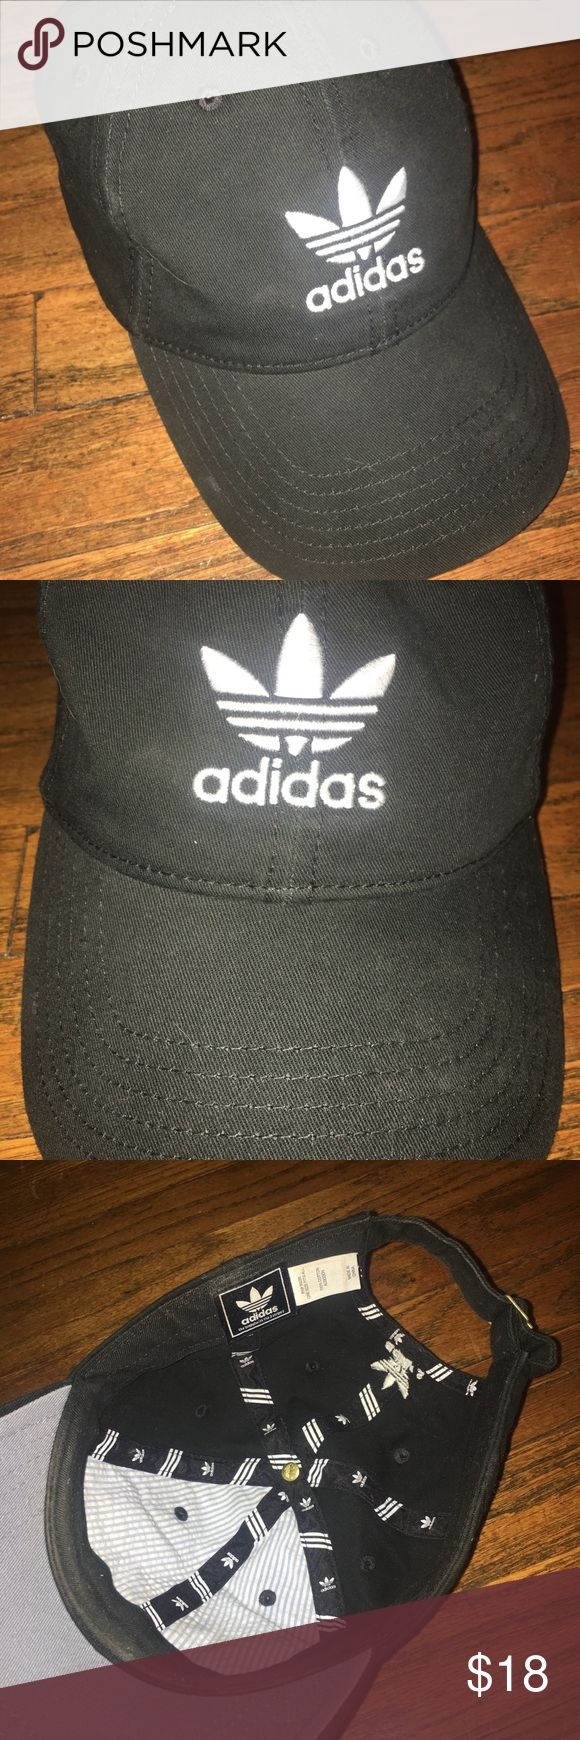 Black Adidas Baseball Cap Great condition! Only worn once! adidas Accessories Hats